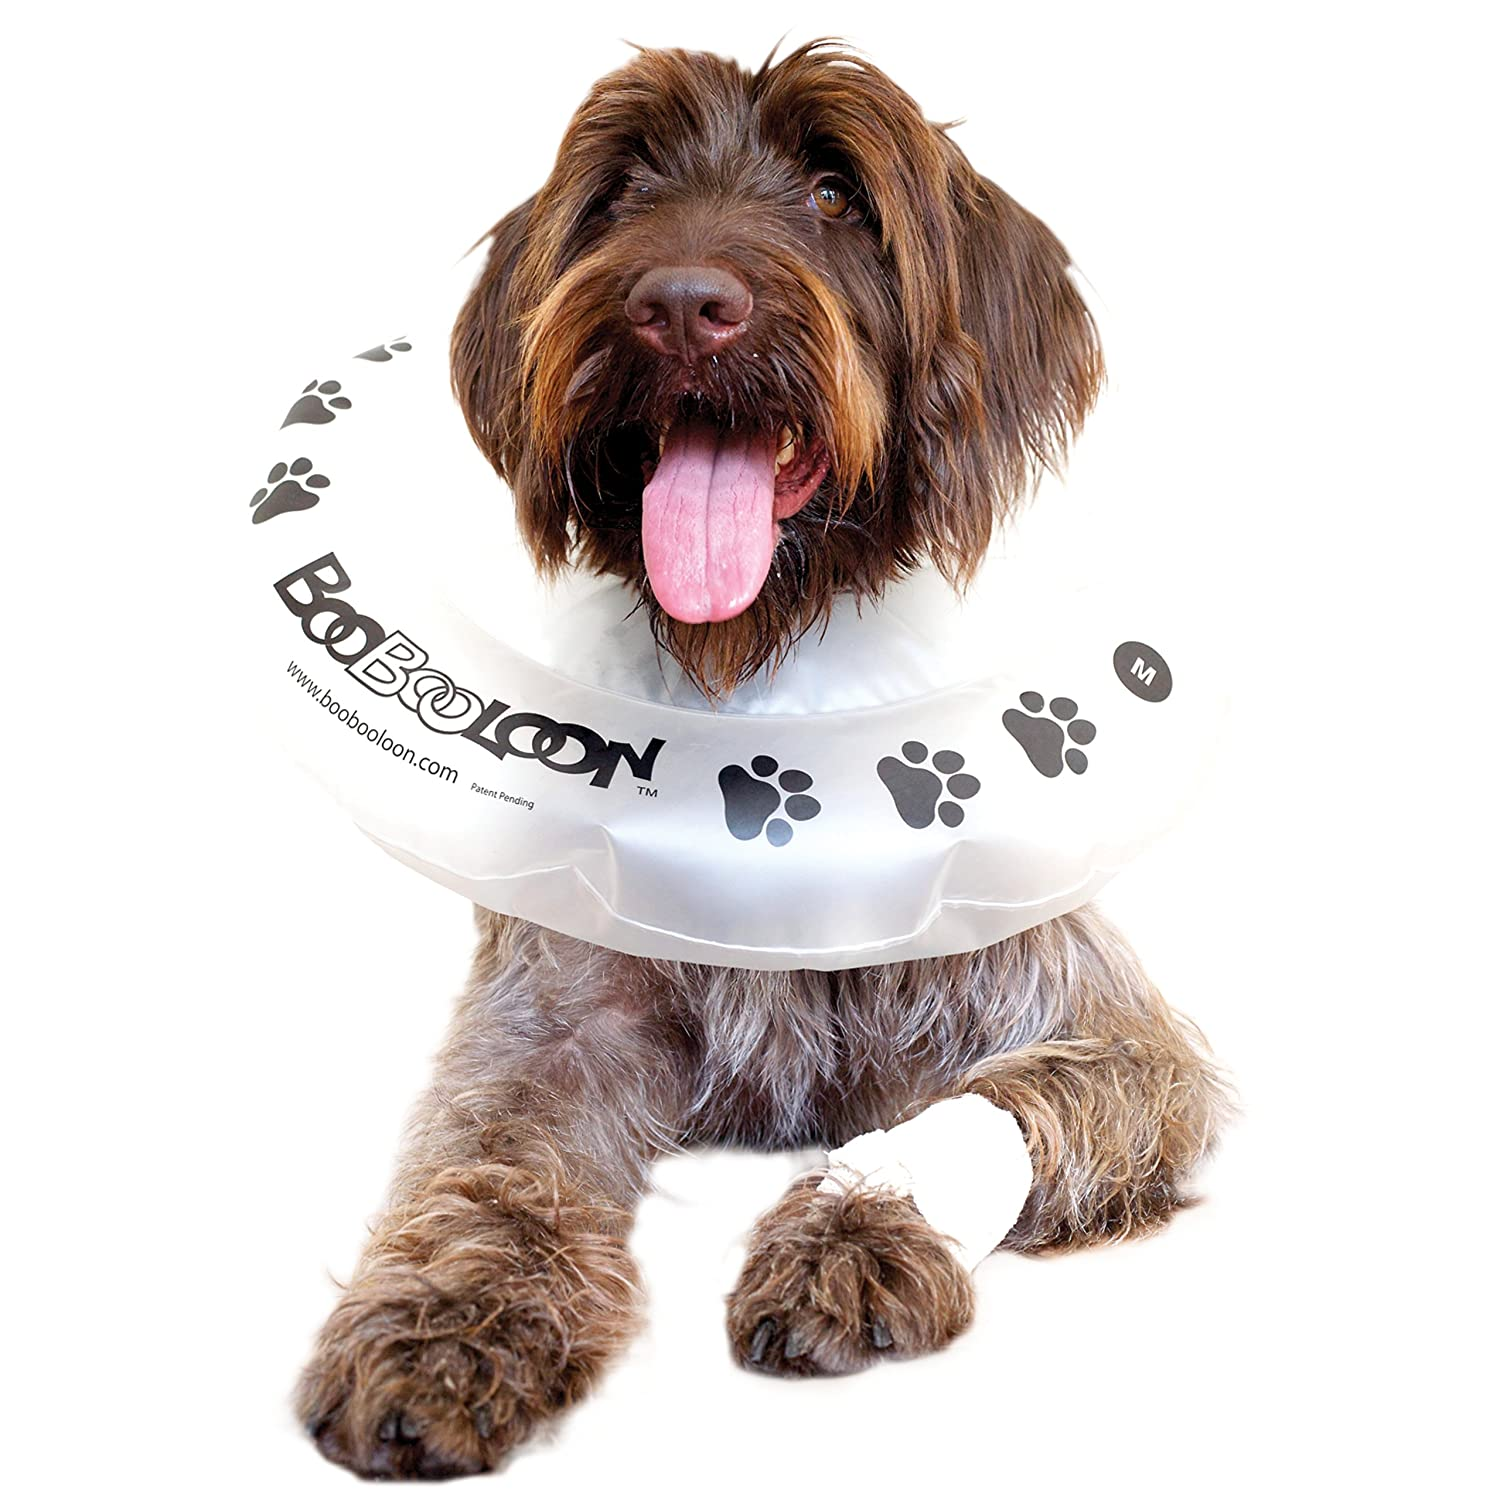 BooBooLoon Inflatable Pet Recovery Collar 1 Medium Size